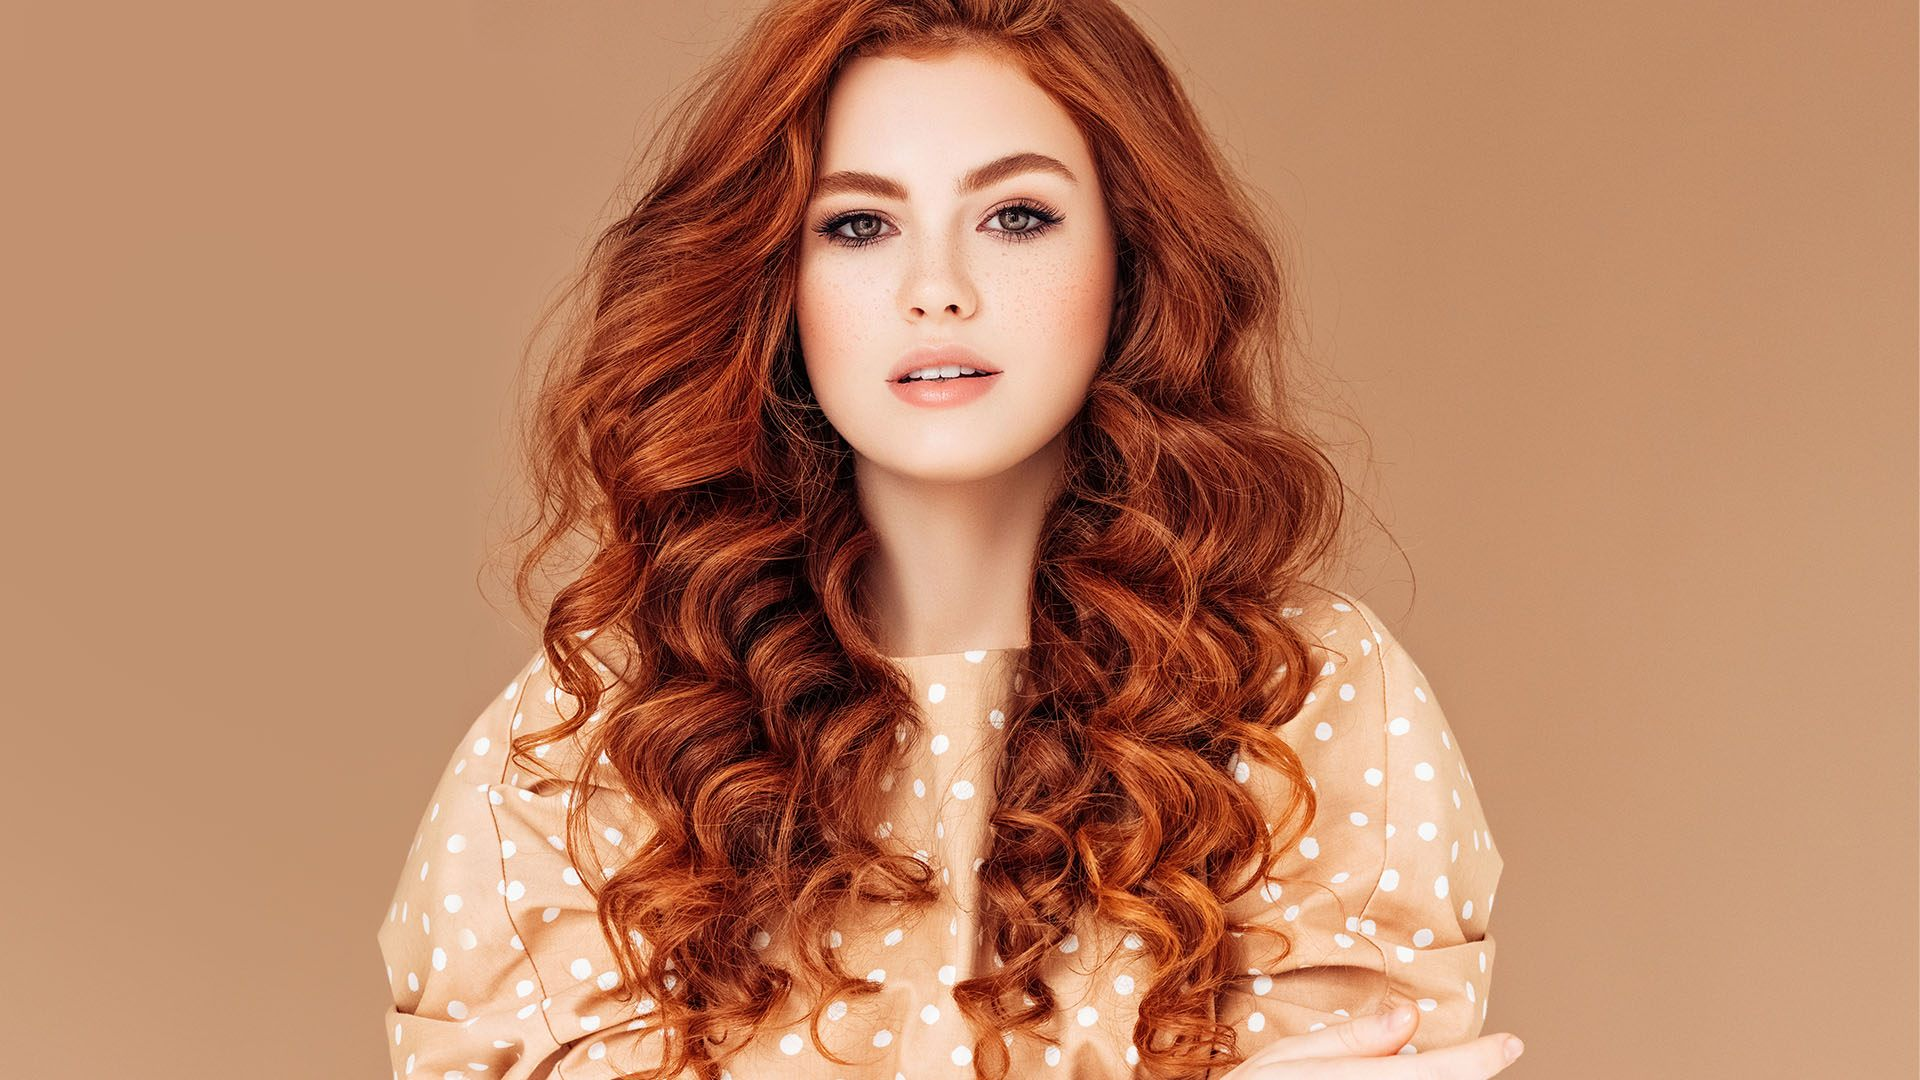 125+ Auburn hair with Amazing Design Ideas